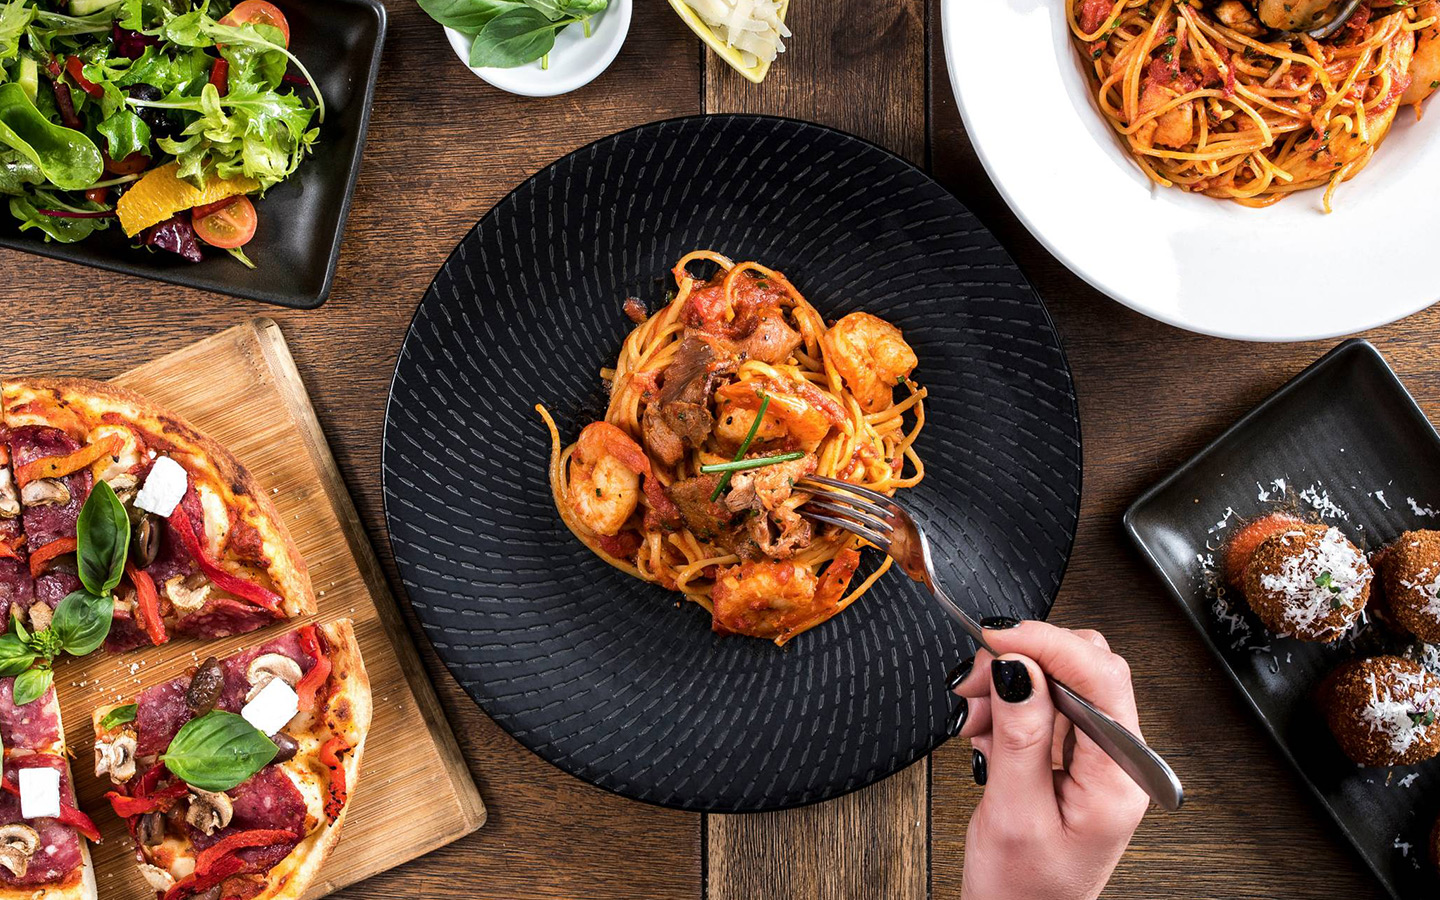 essay about italian food During the last decades of the twentieth century (1980s and 1990s), however, pasta and pizza (another traditional southern food) became popular in the north of italy pasta is more likely to be served with a white cheese sauce in the north and a tomato-based sauce in the south.